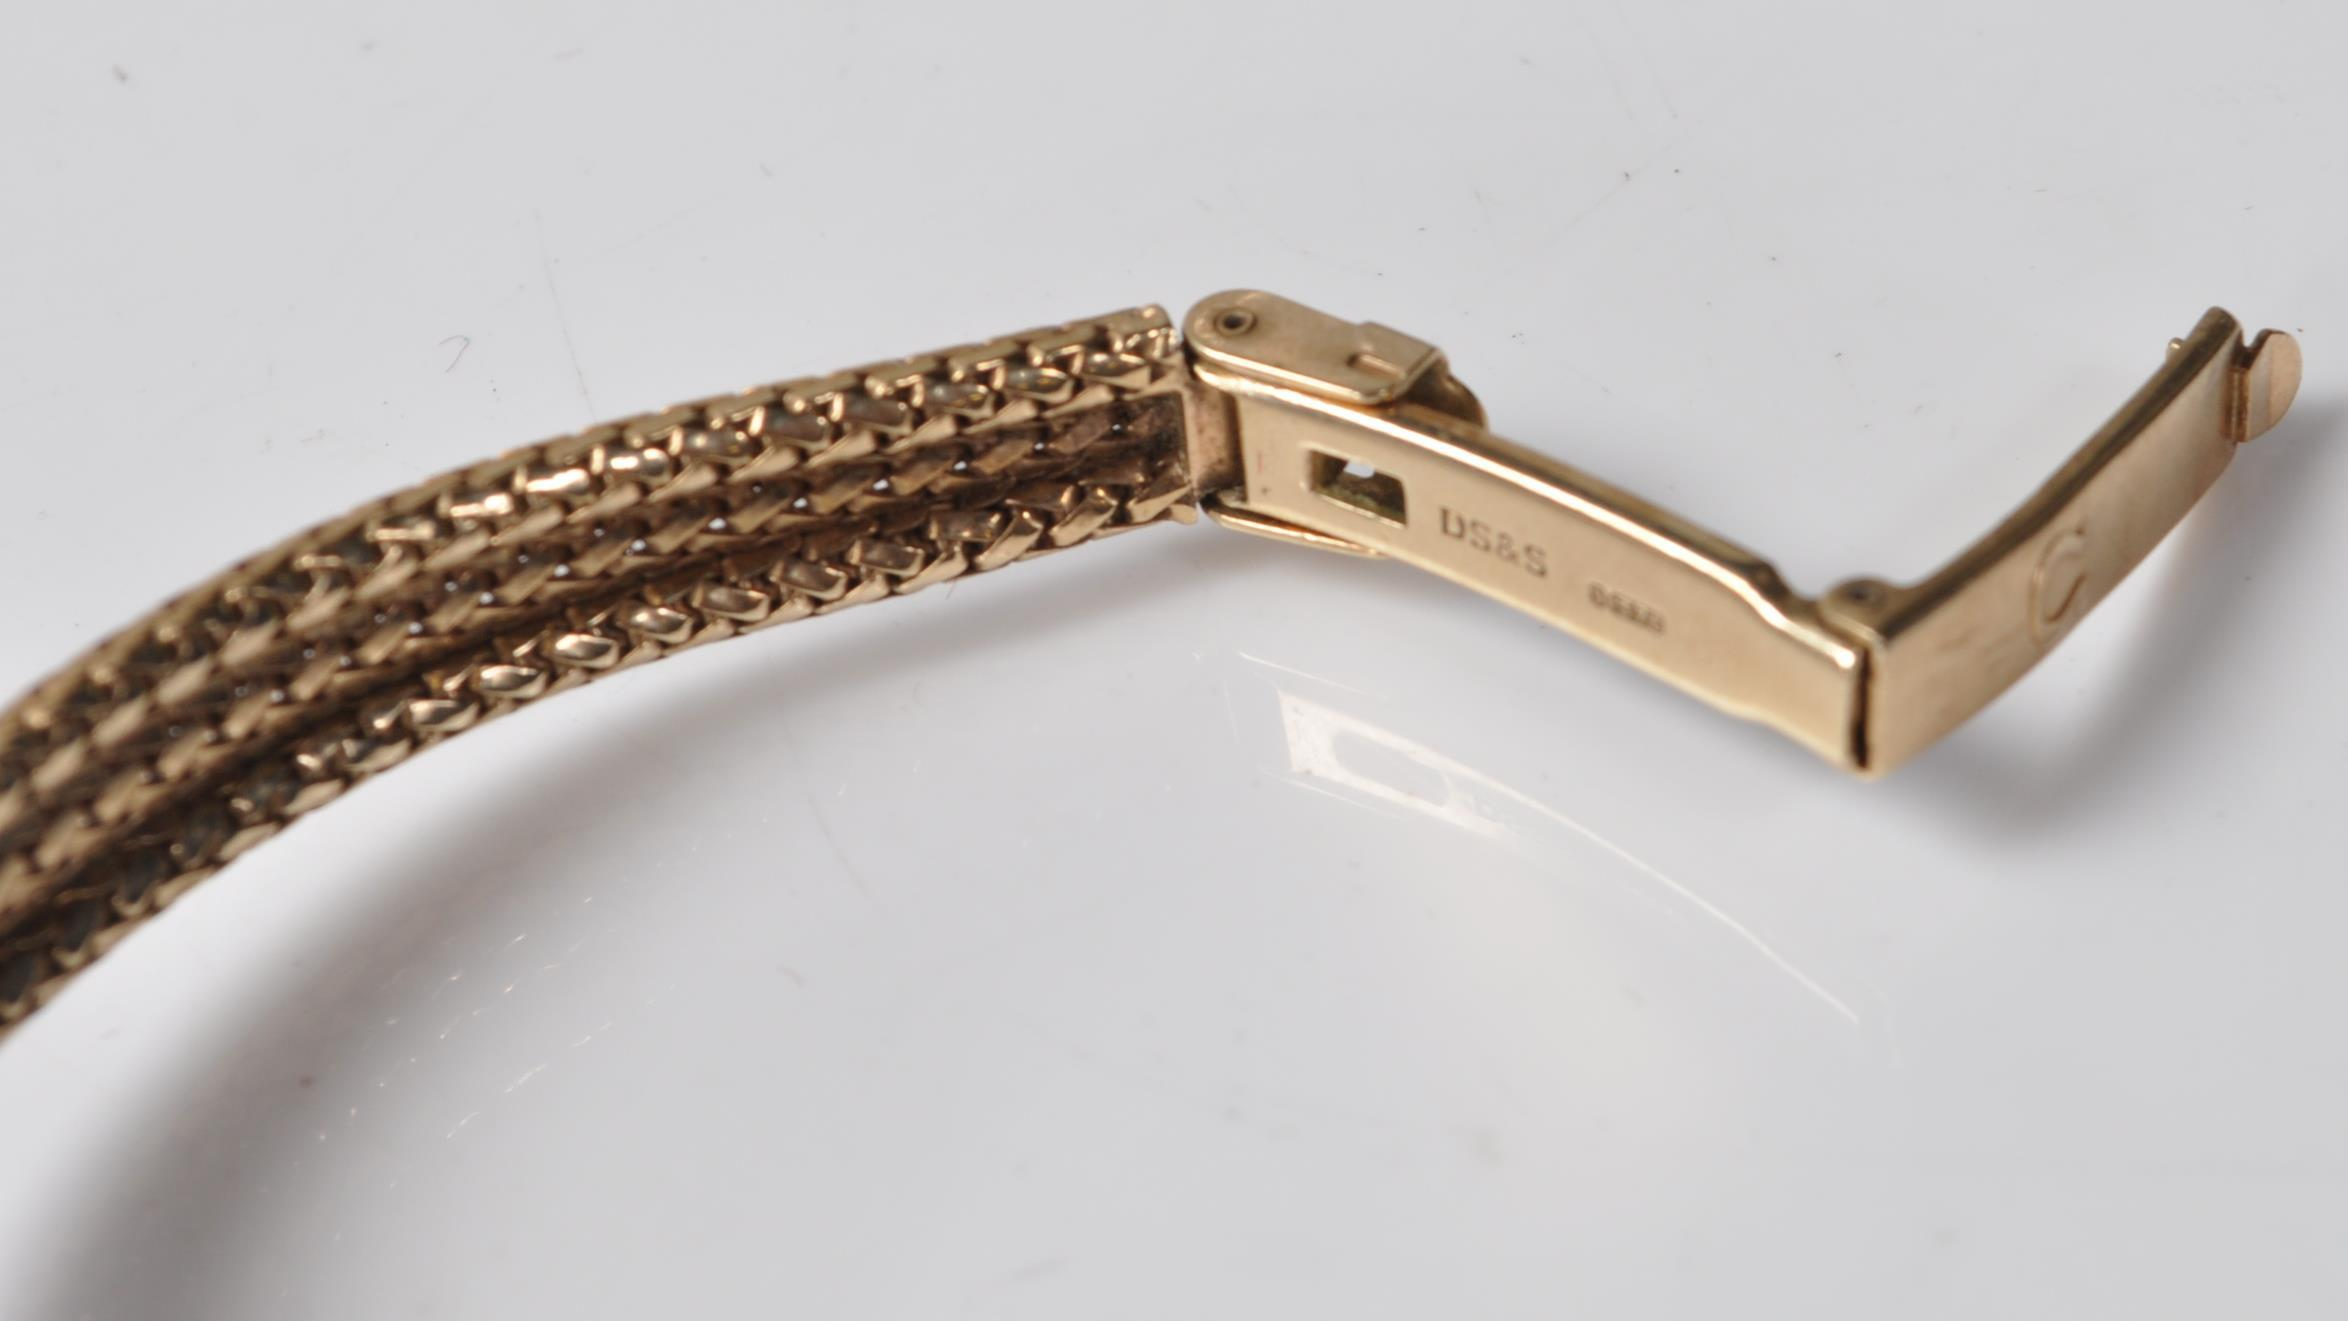 9CT GOLD OMEGA LADIES WATCH - Image 9 of 15